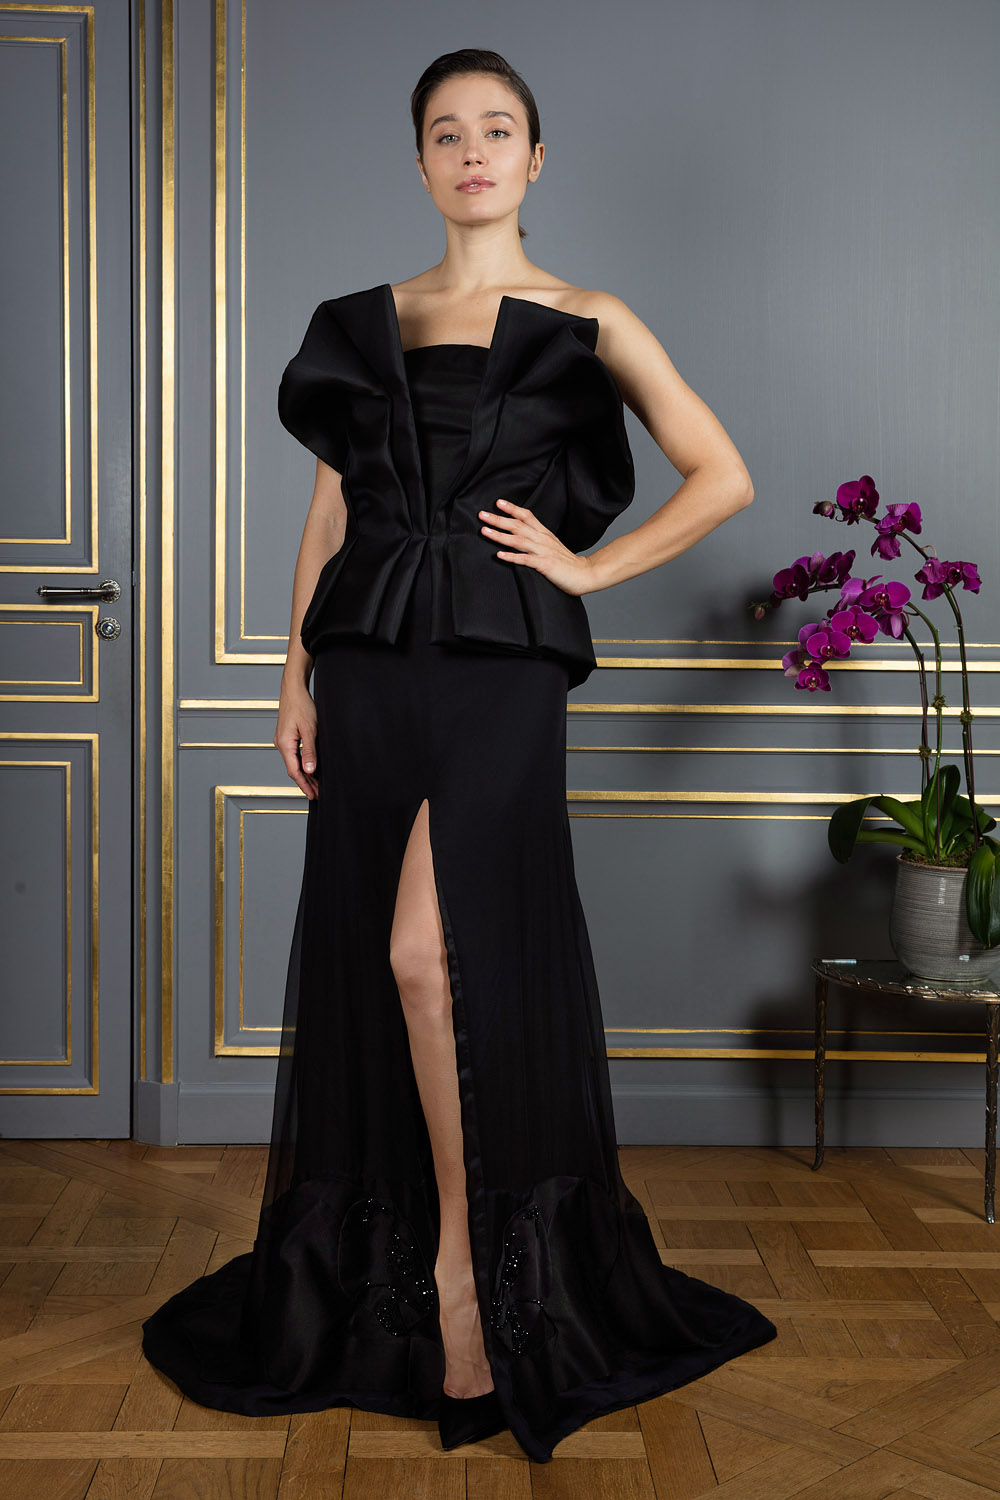 760f243d1e85e boutiquelessuites.com - LesSuitesOnline buy Djaba Diassamidze - Black  strapless gown on our website